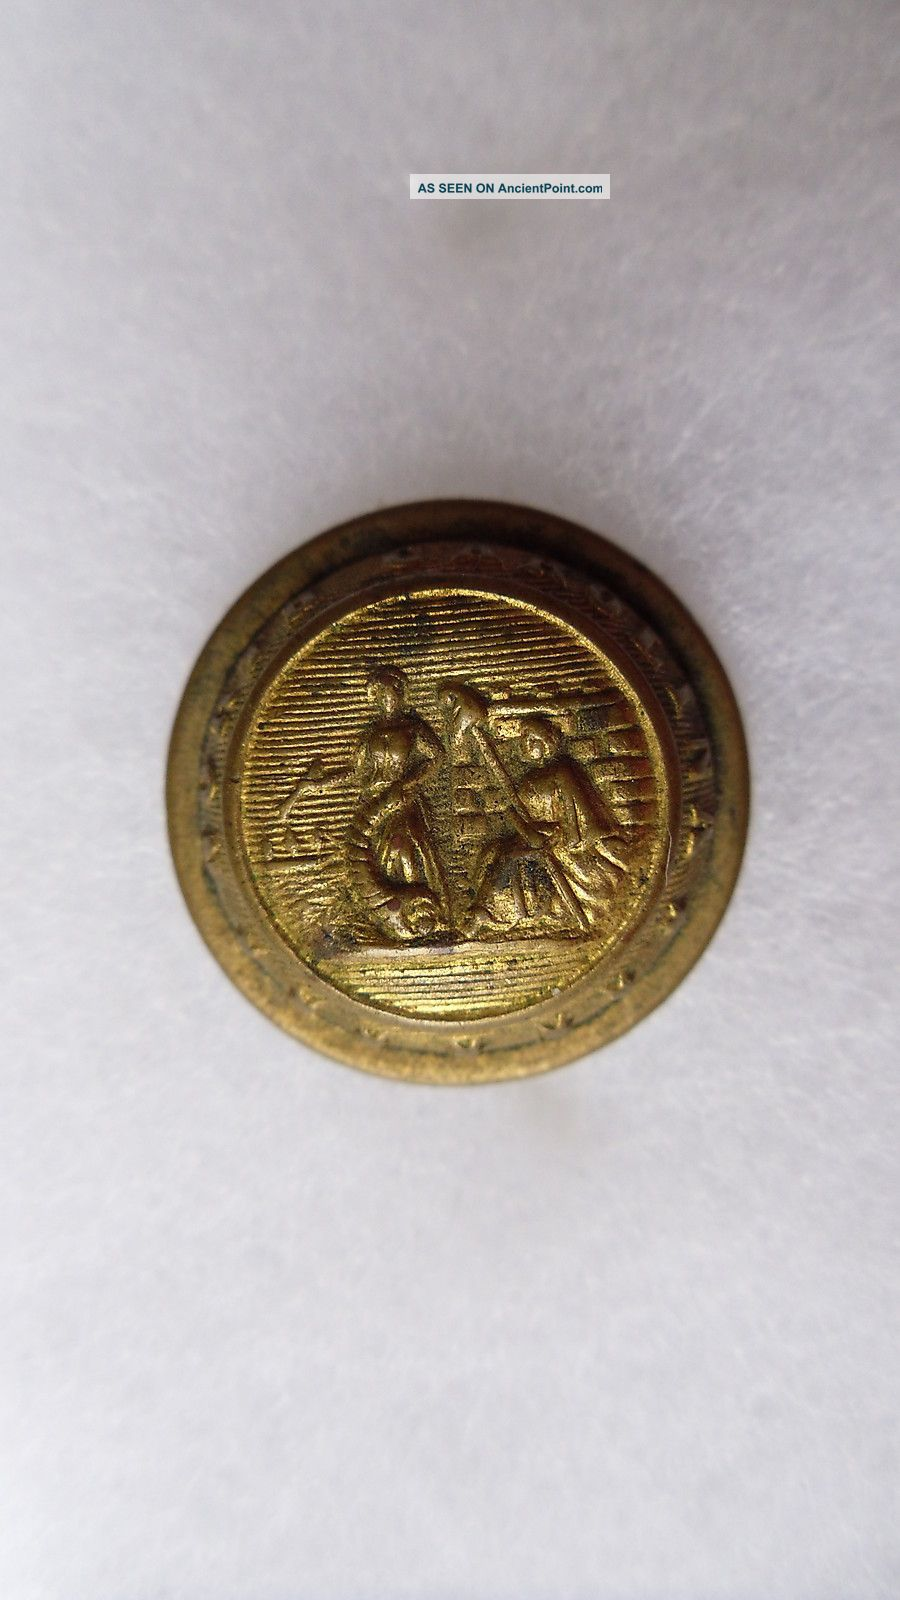 Antique North Carolina State Seal Coat Button Waterbury Button Co 23 Mm Buttons photo